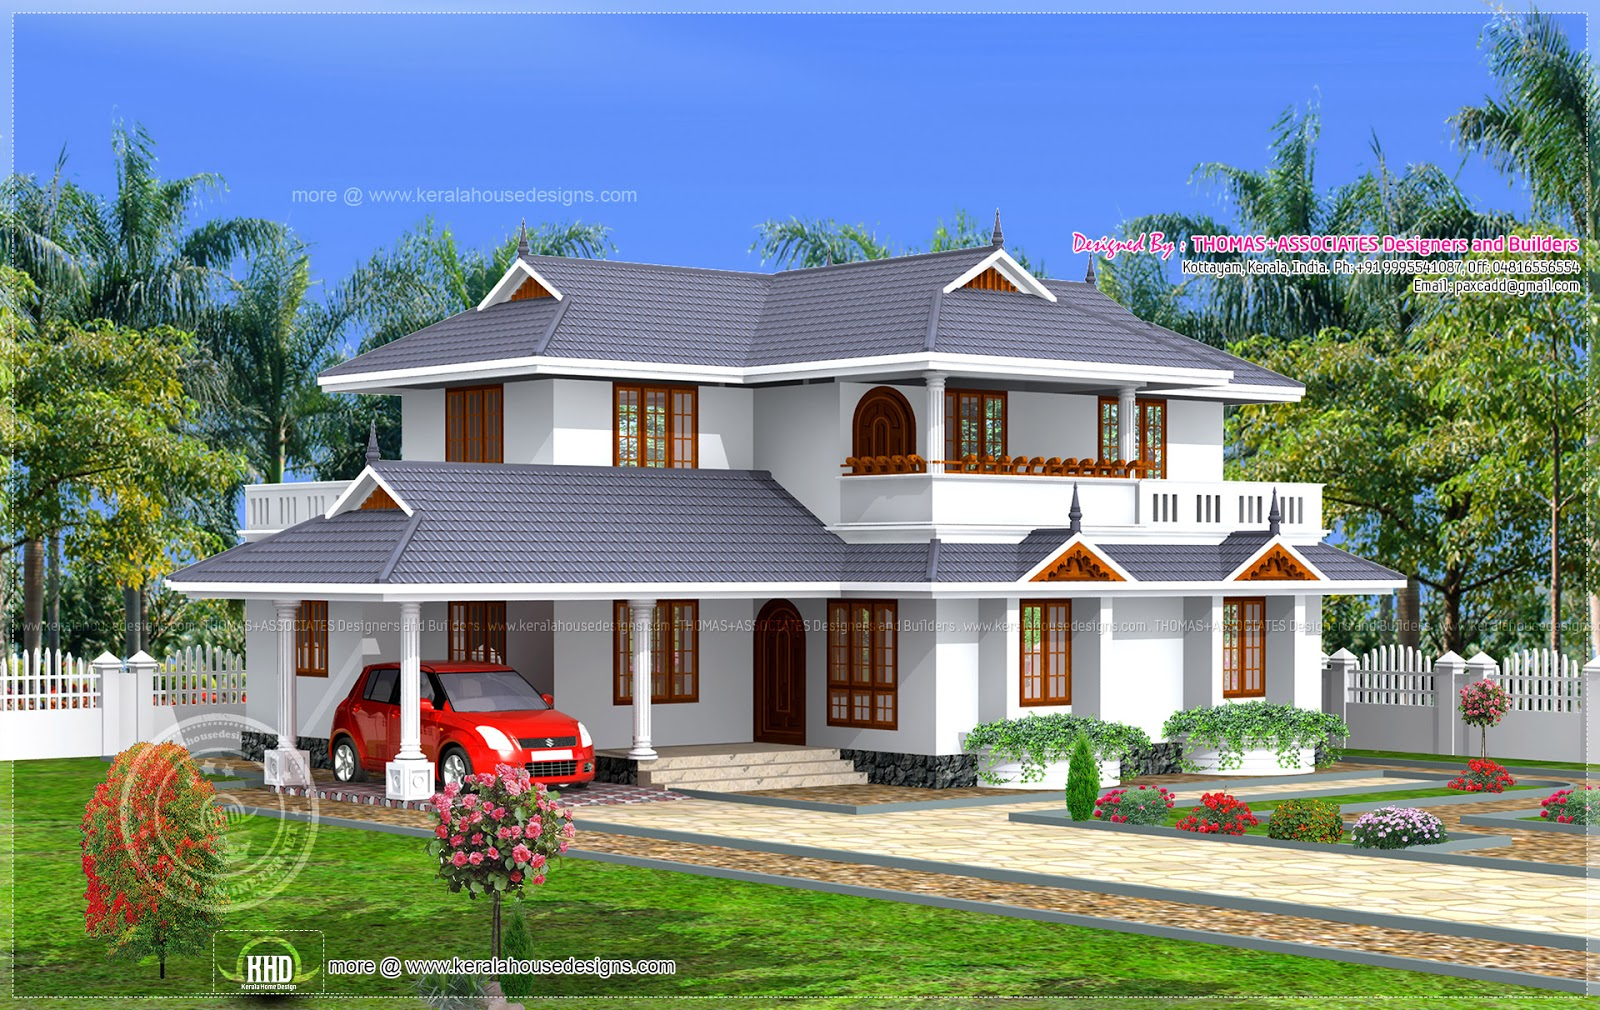 4 bedroom kerala model home in 204 home kerala for 2 bedroom house plans in kerala